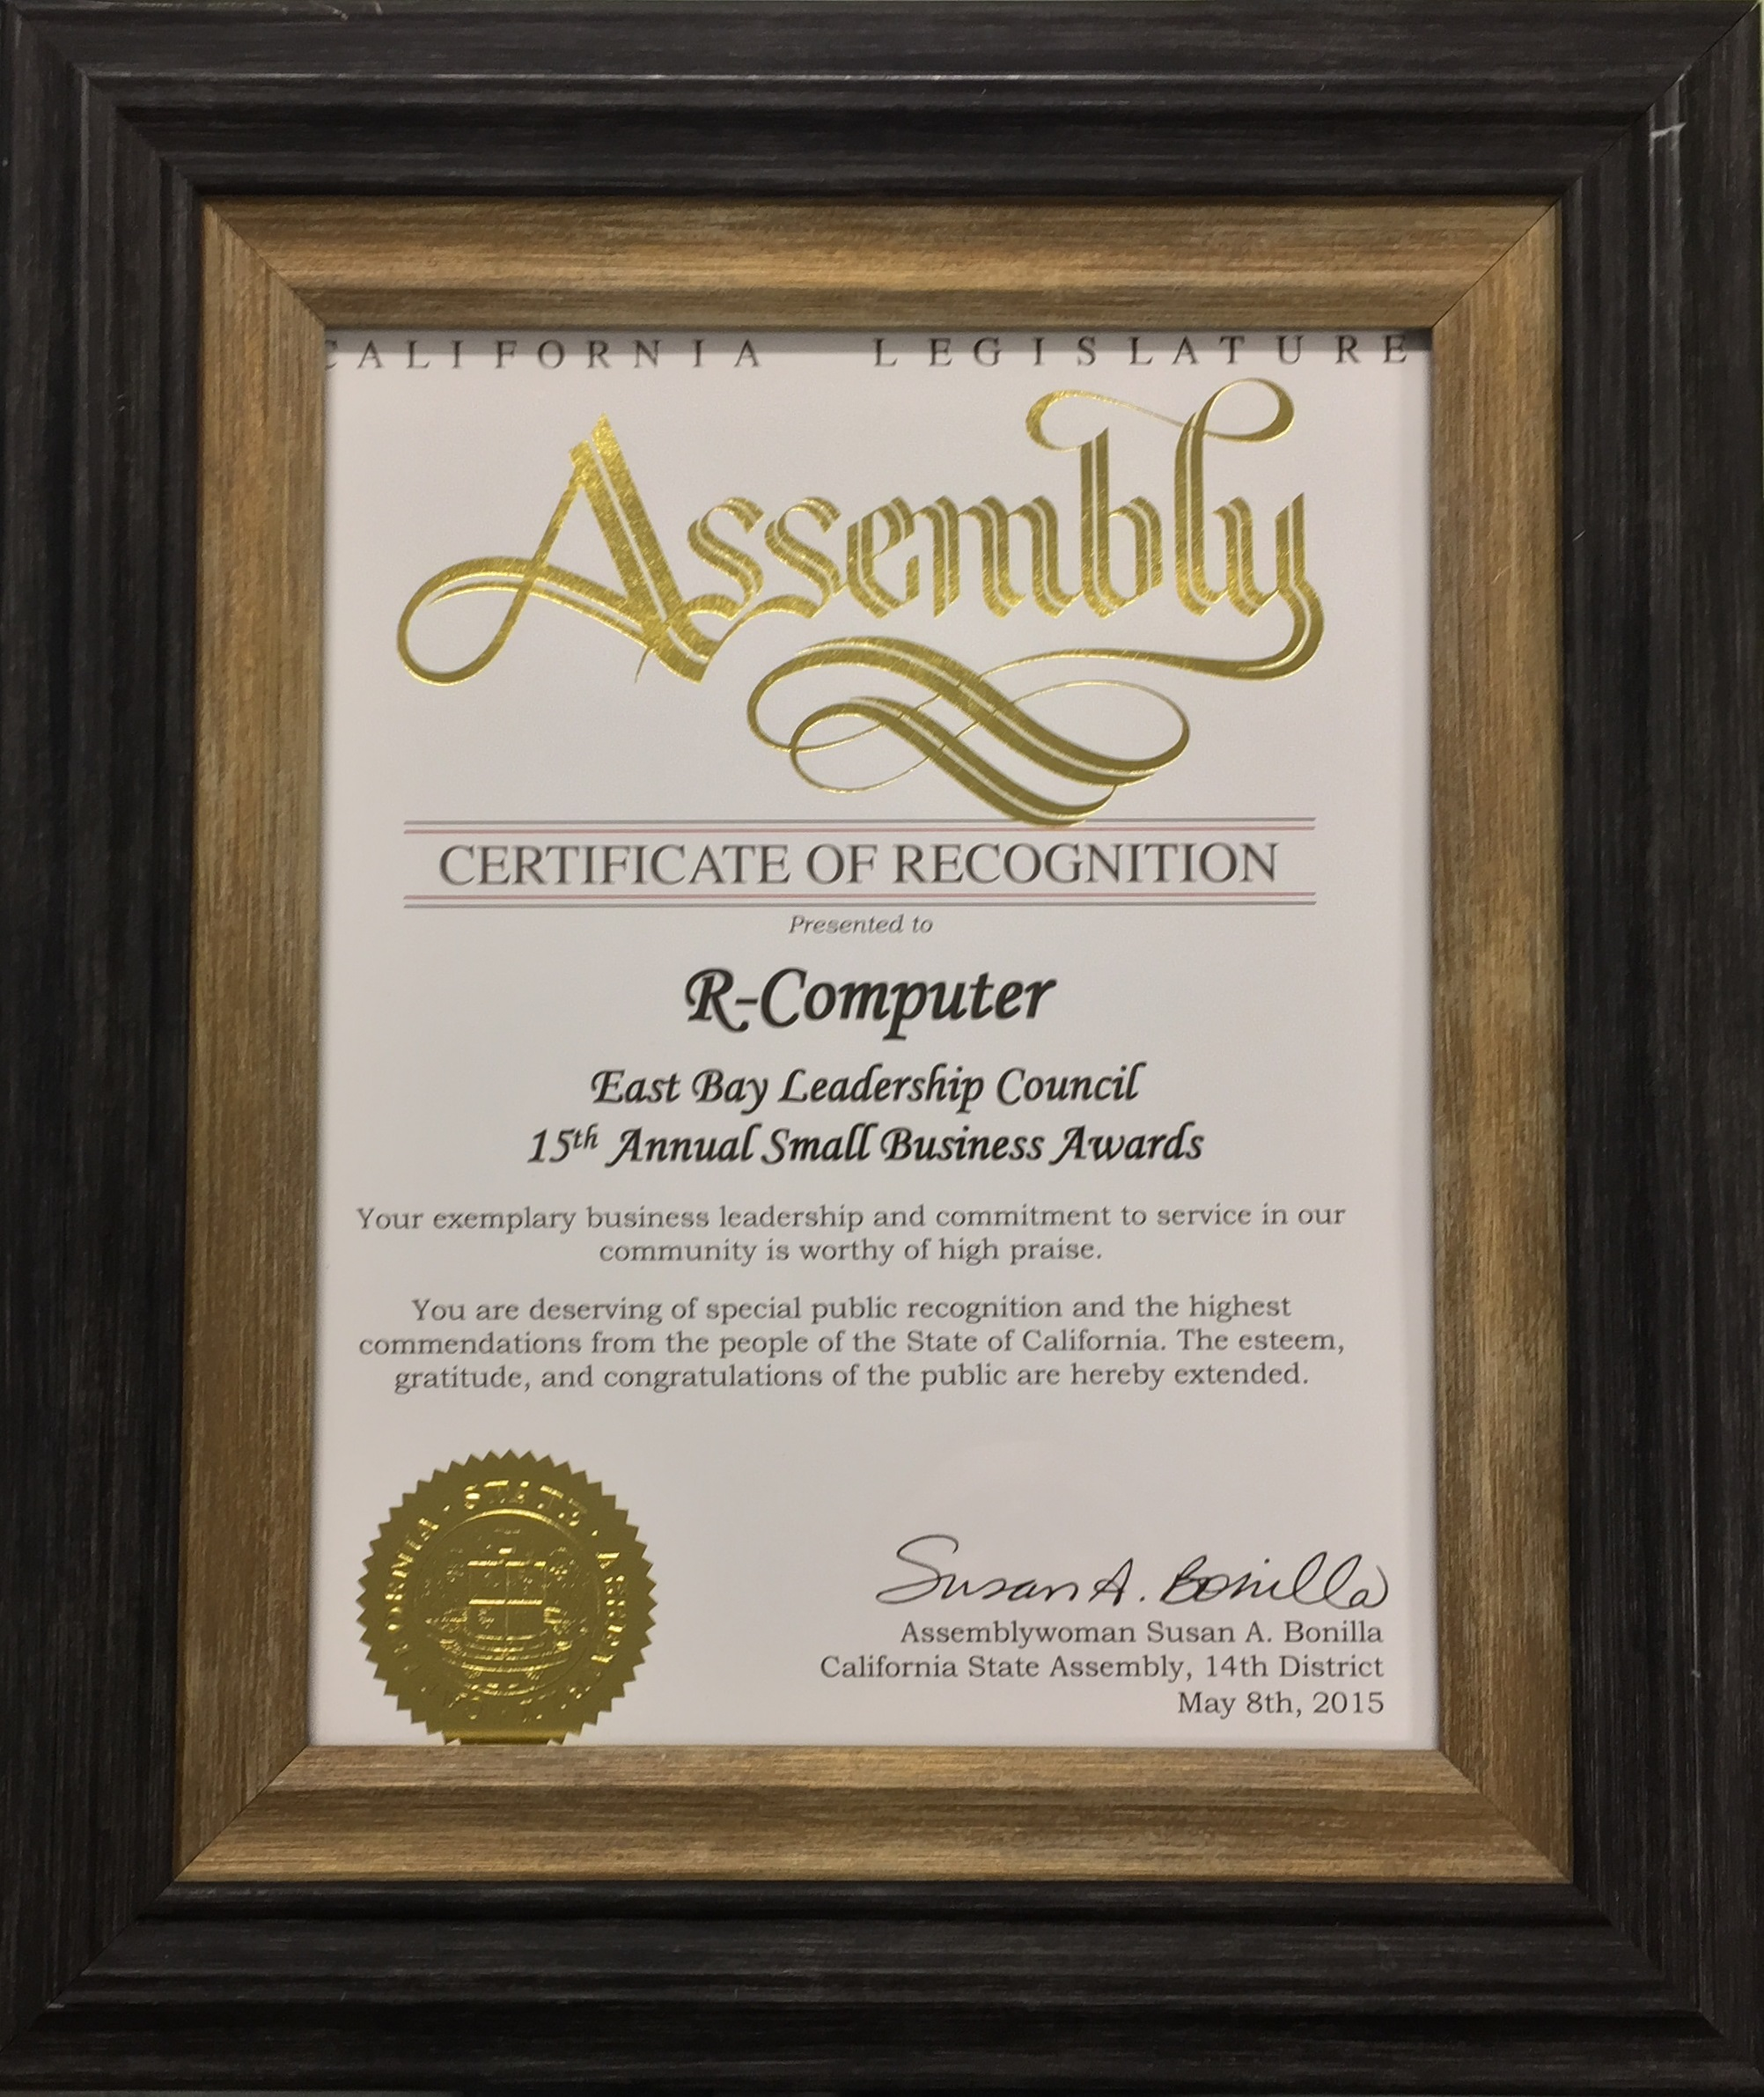 R-Computer Concord California, Awards, IT Services, Computer Notebook Repair, Managed Services Provider in Concord, CA